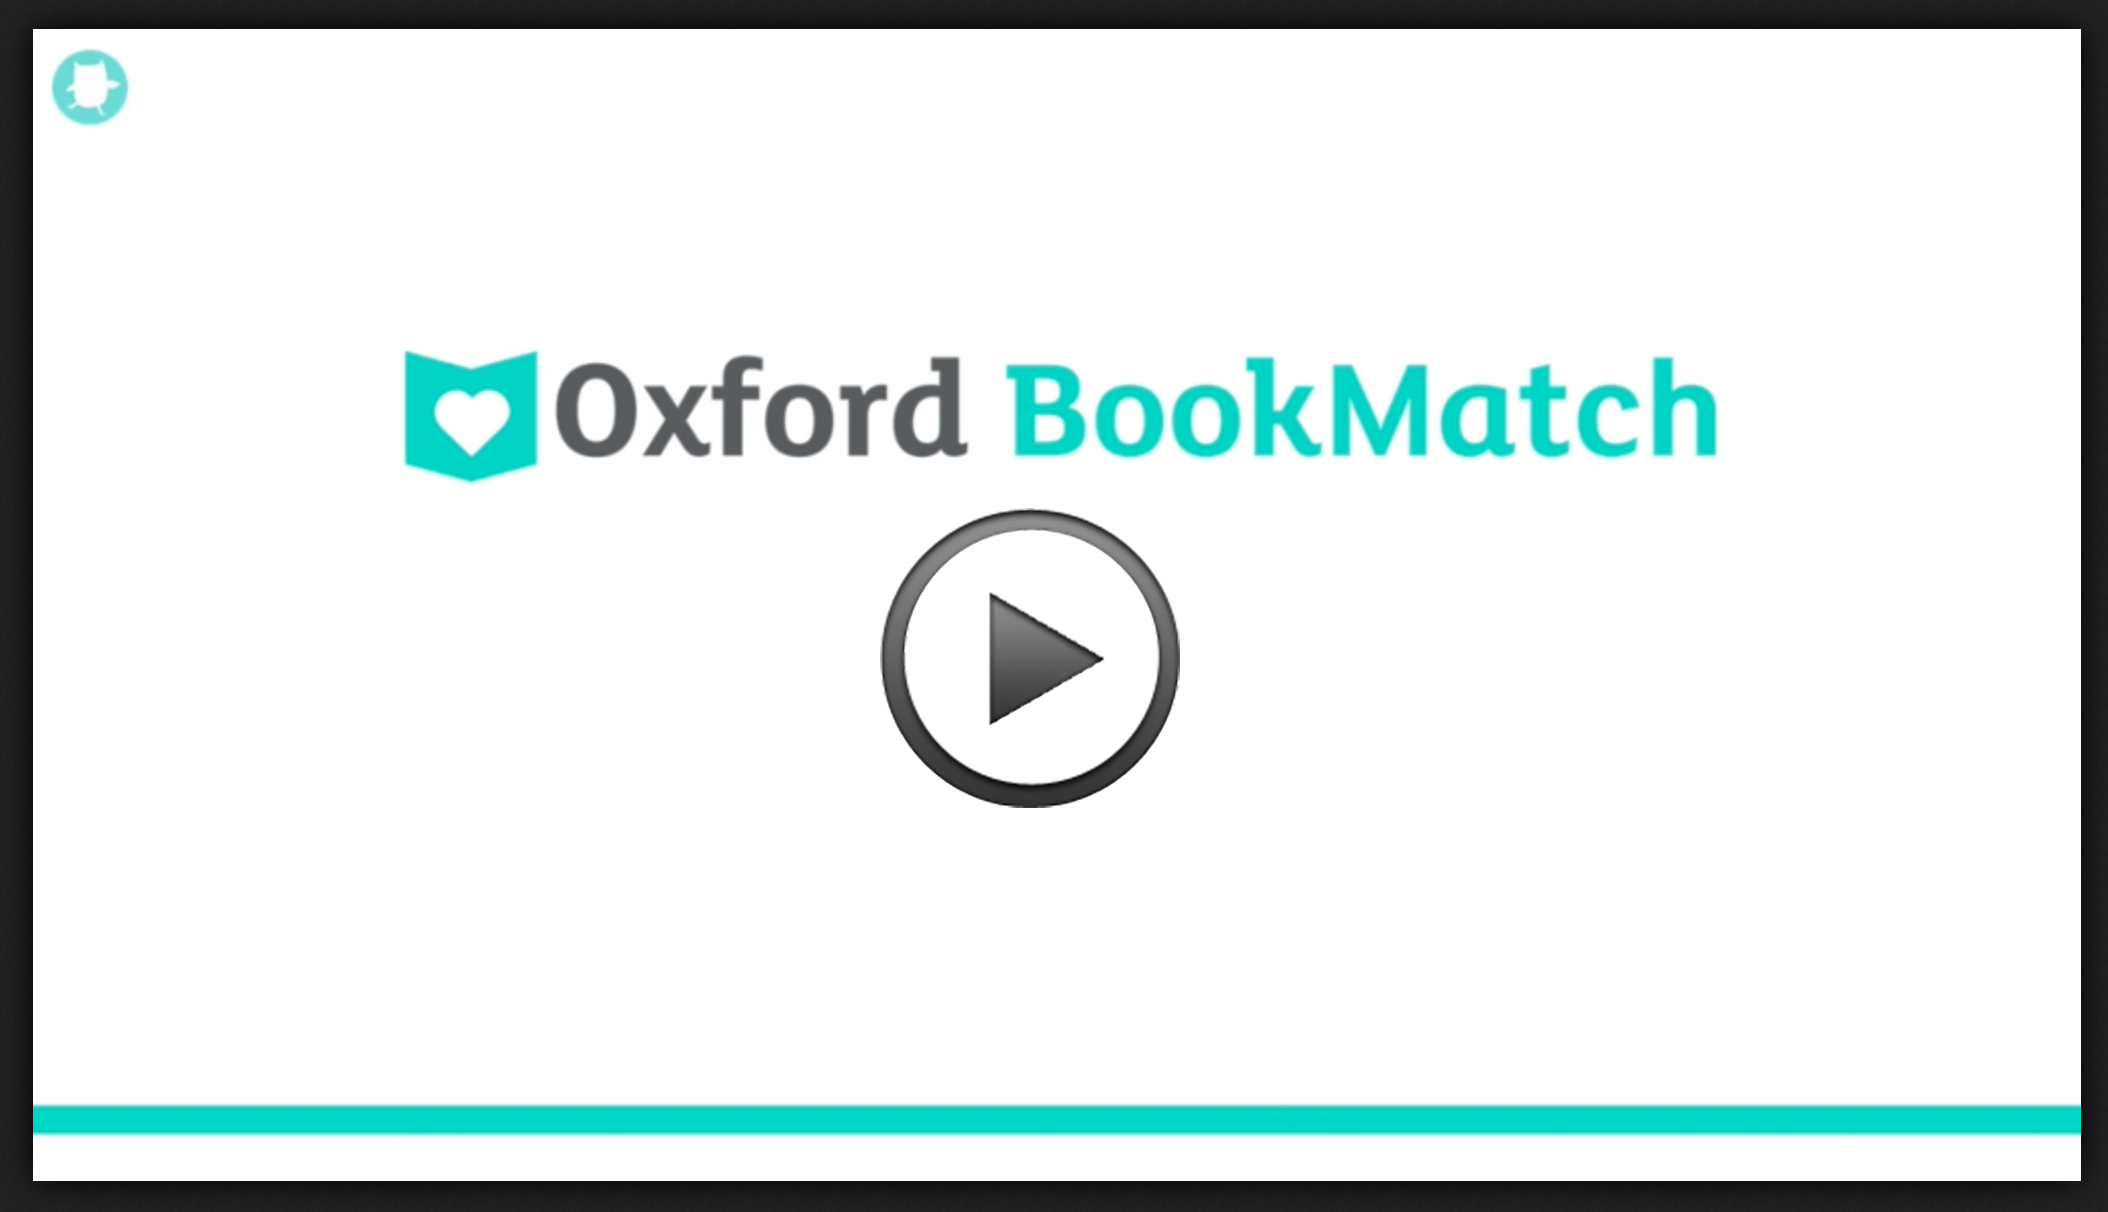 oxford-bookmatch-img